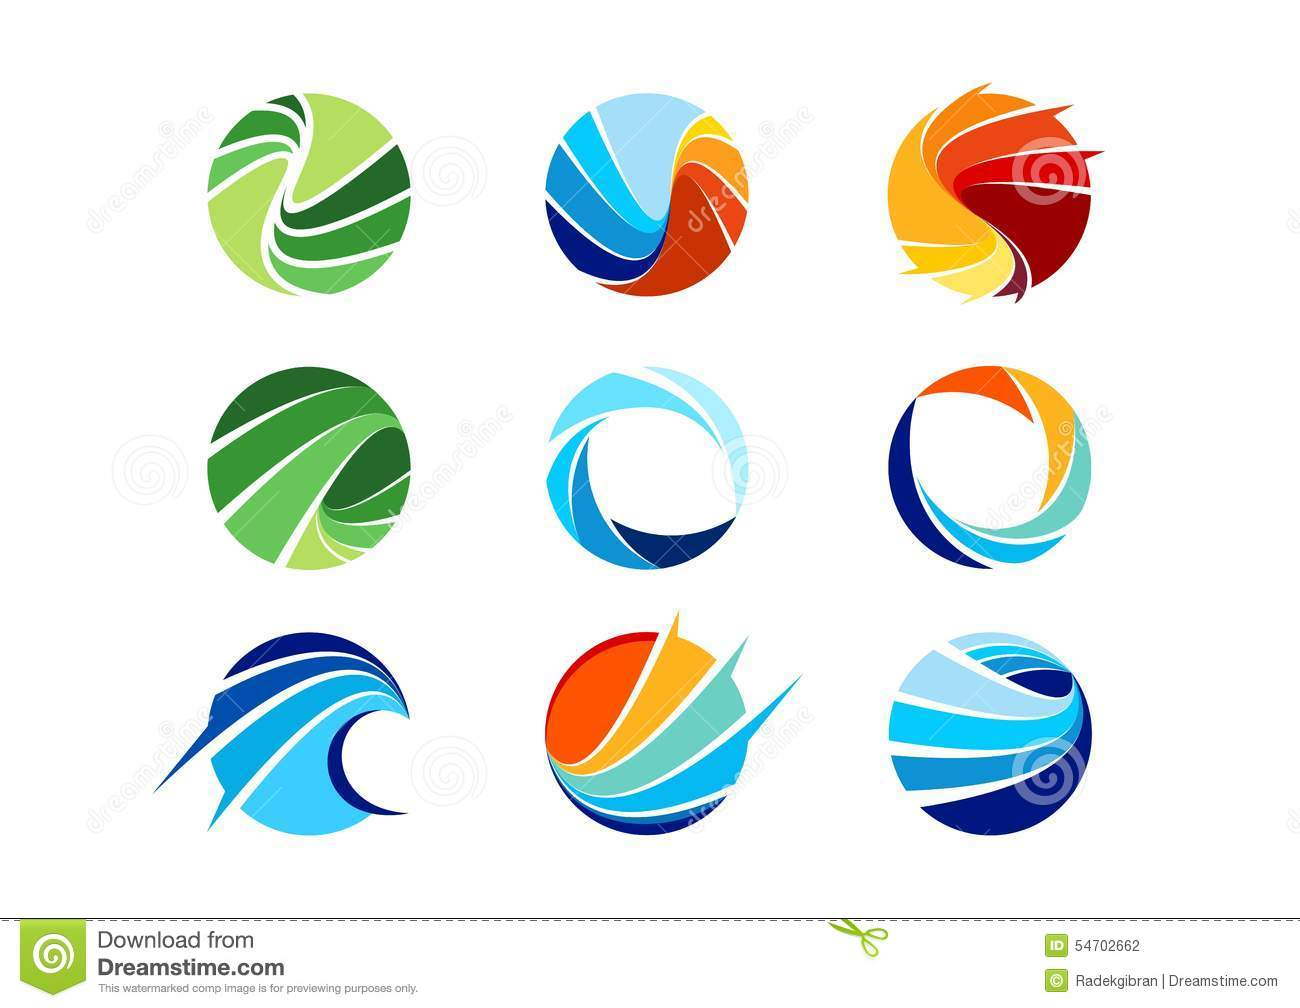 sphere, circle, logo, global, abstract, business, company, corporation, infinity, Set of round icon symbol vector design